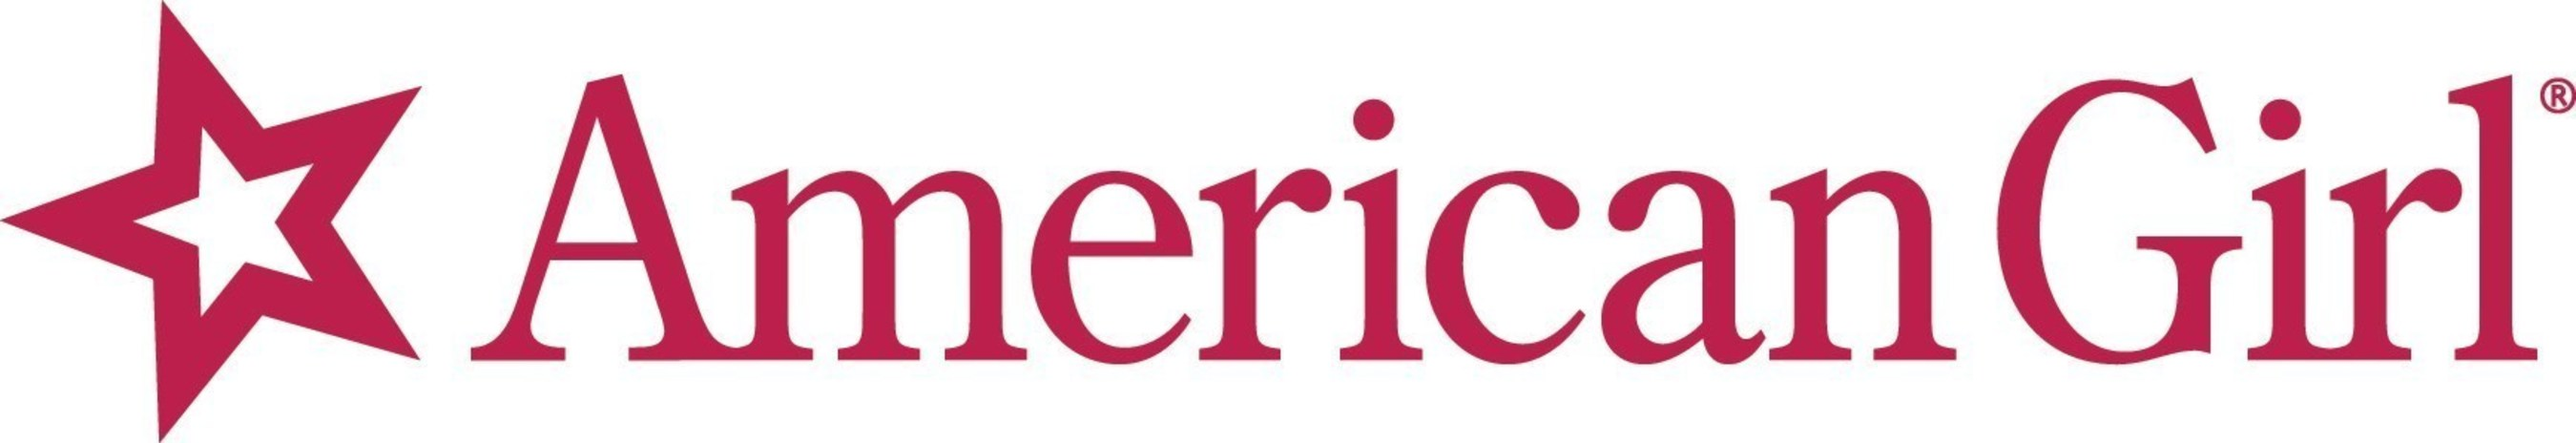 """AMERICAN GIRL(R) ANNOUNCES EXCLUSIVE MULTI-YEAR PARTNERSHIP WITH TOYS""""R""""US(R)"""